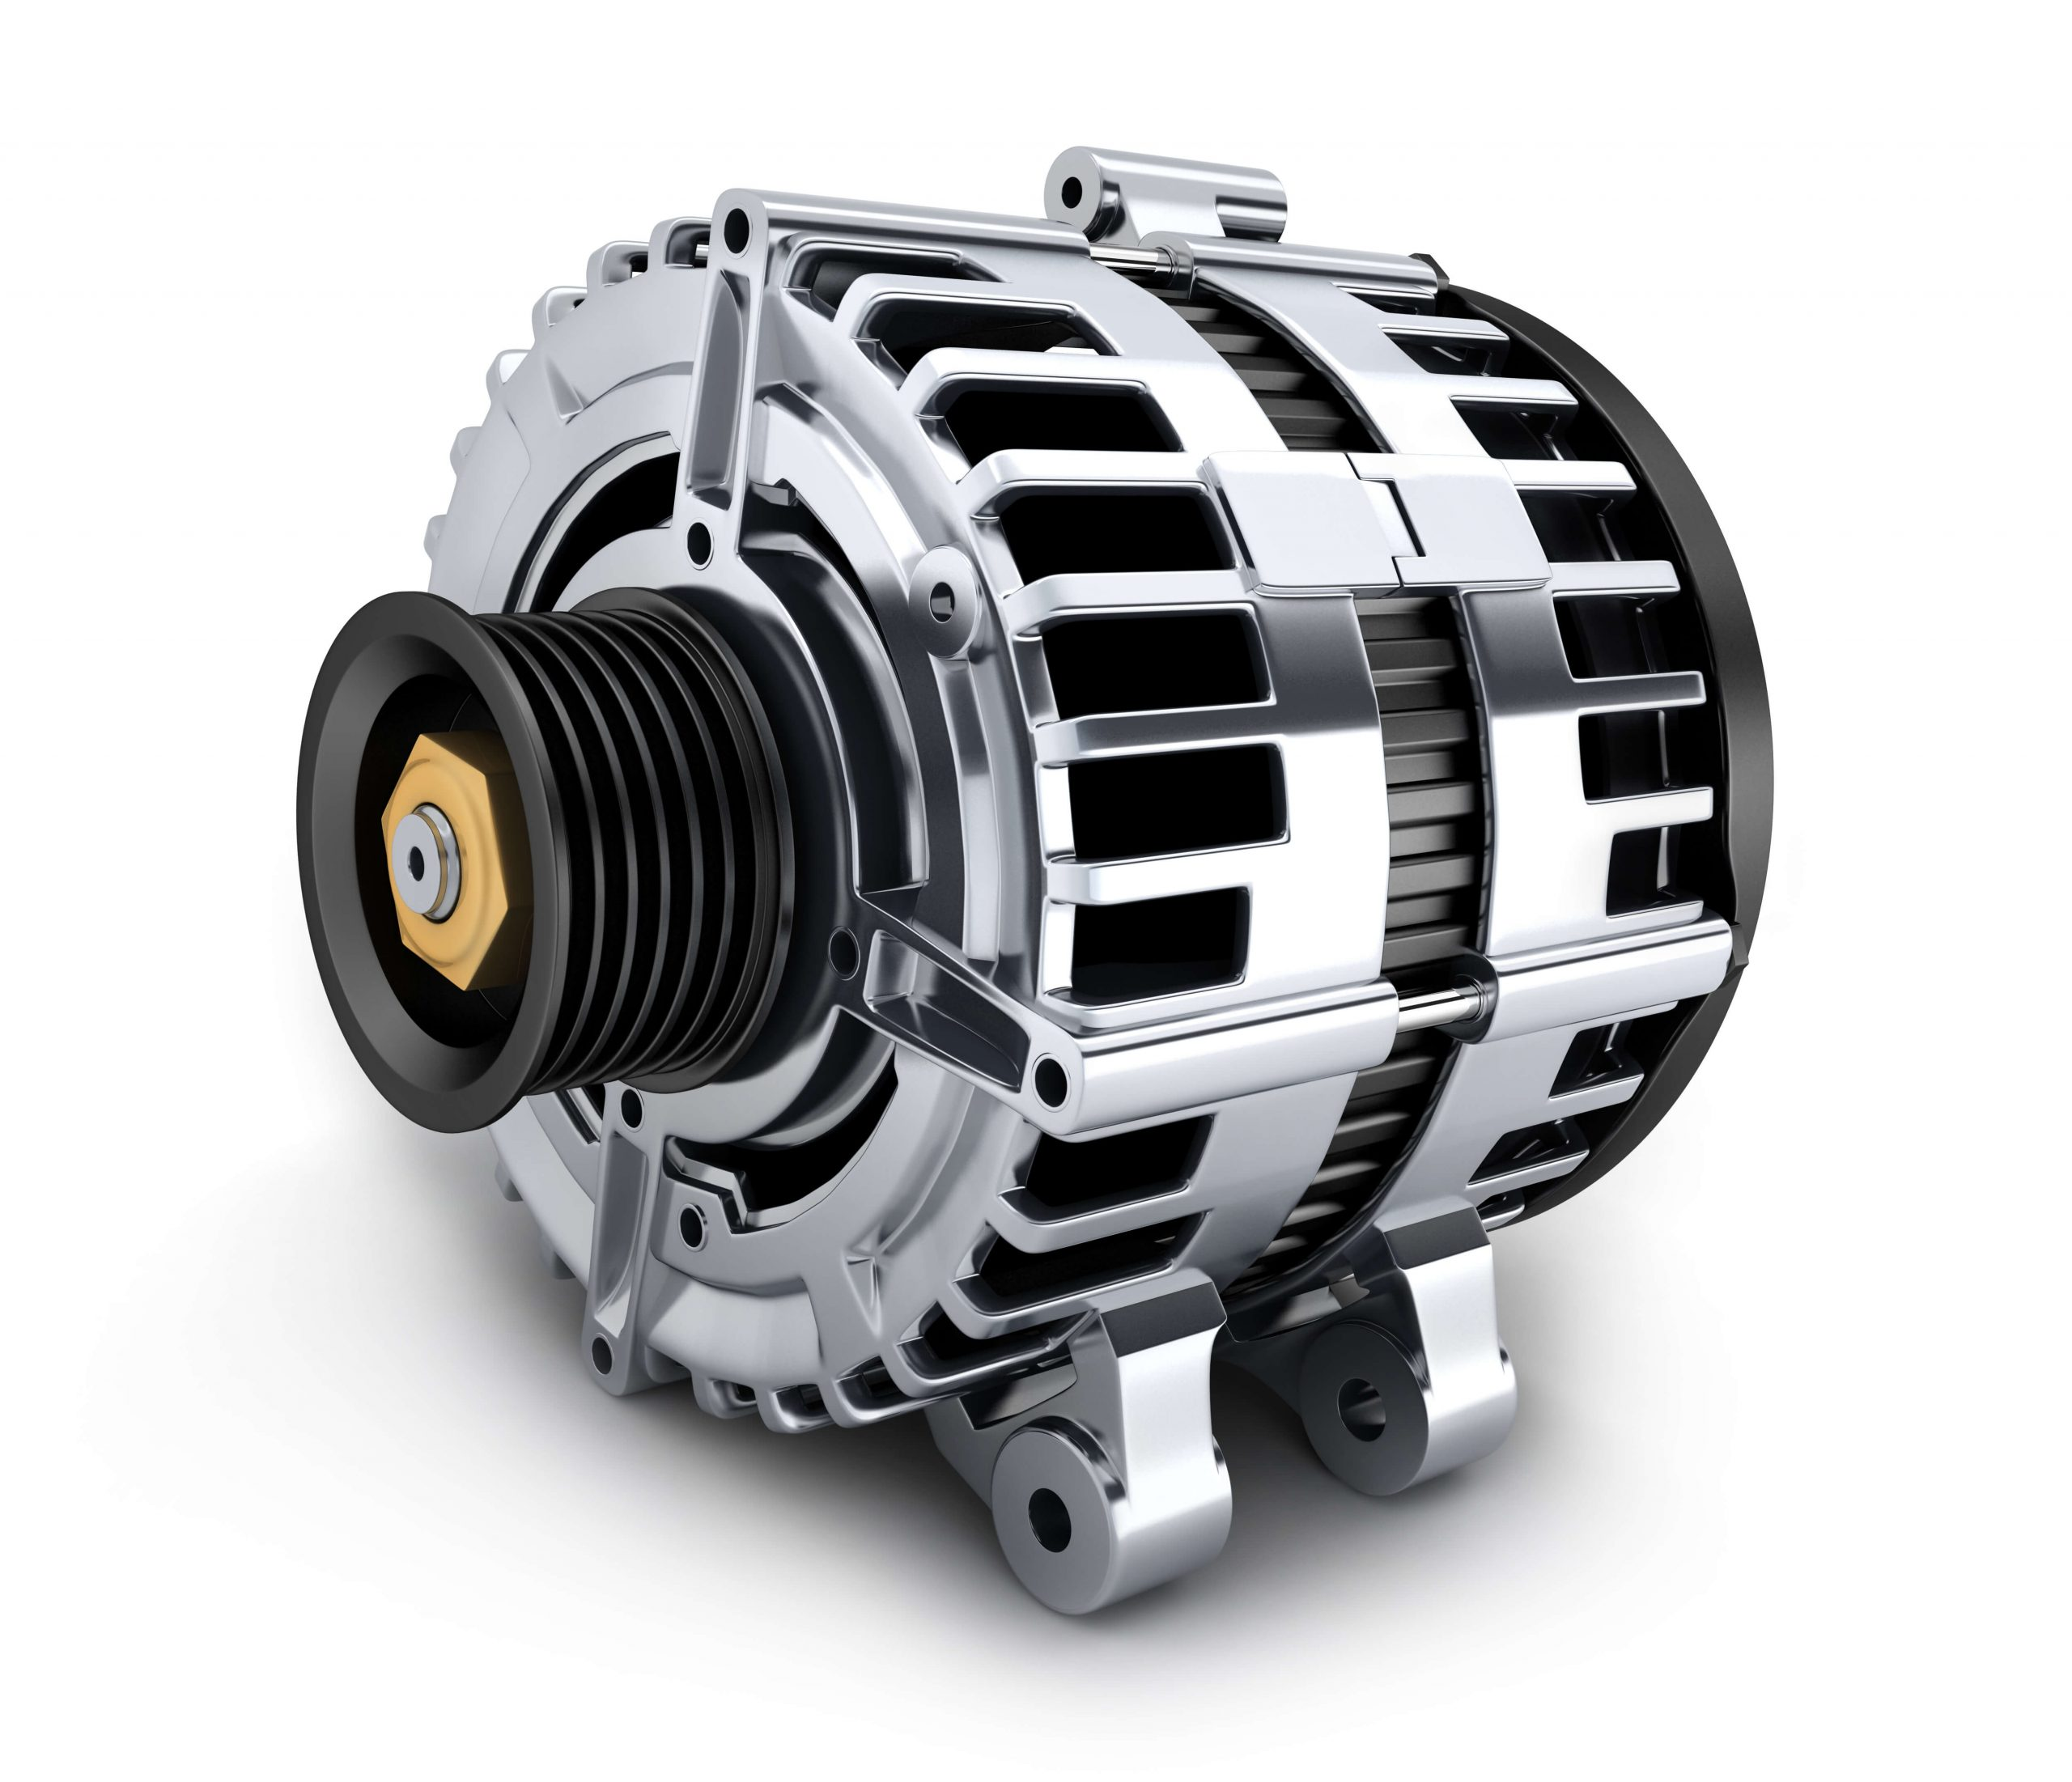 Alternator Vs Generator What Is The Difference Between Them Be Up